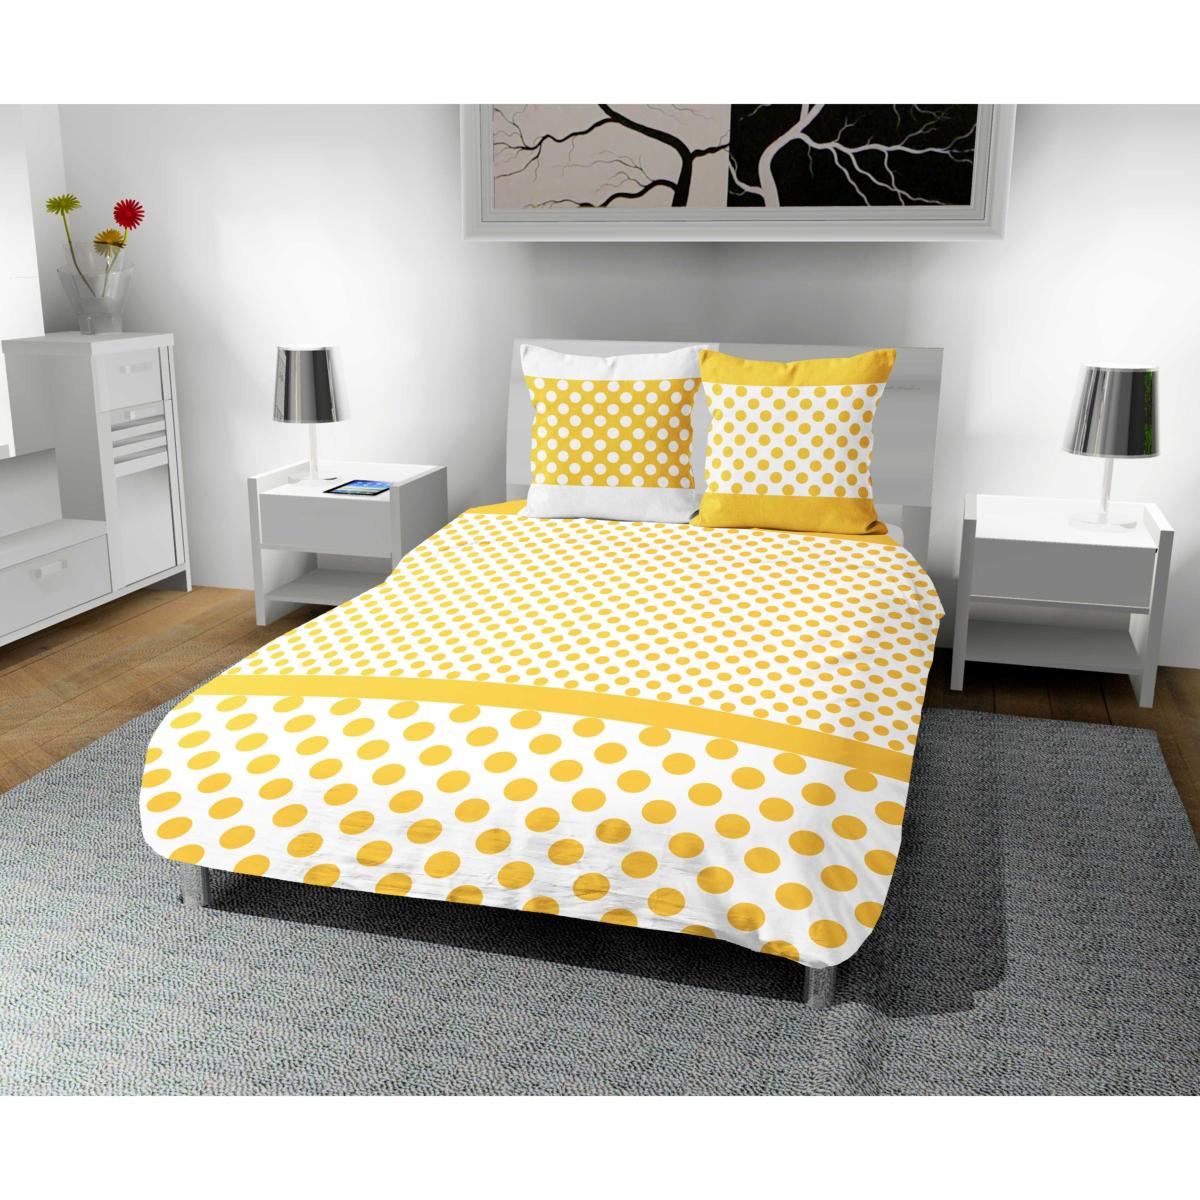 parure housse de couette pois jaune et blanche microfibre 2 personnes j k markets. Black Bedroom Furniture Sets. Home Design Ideas